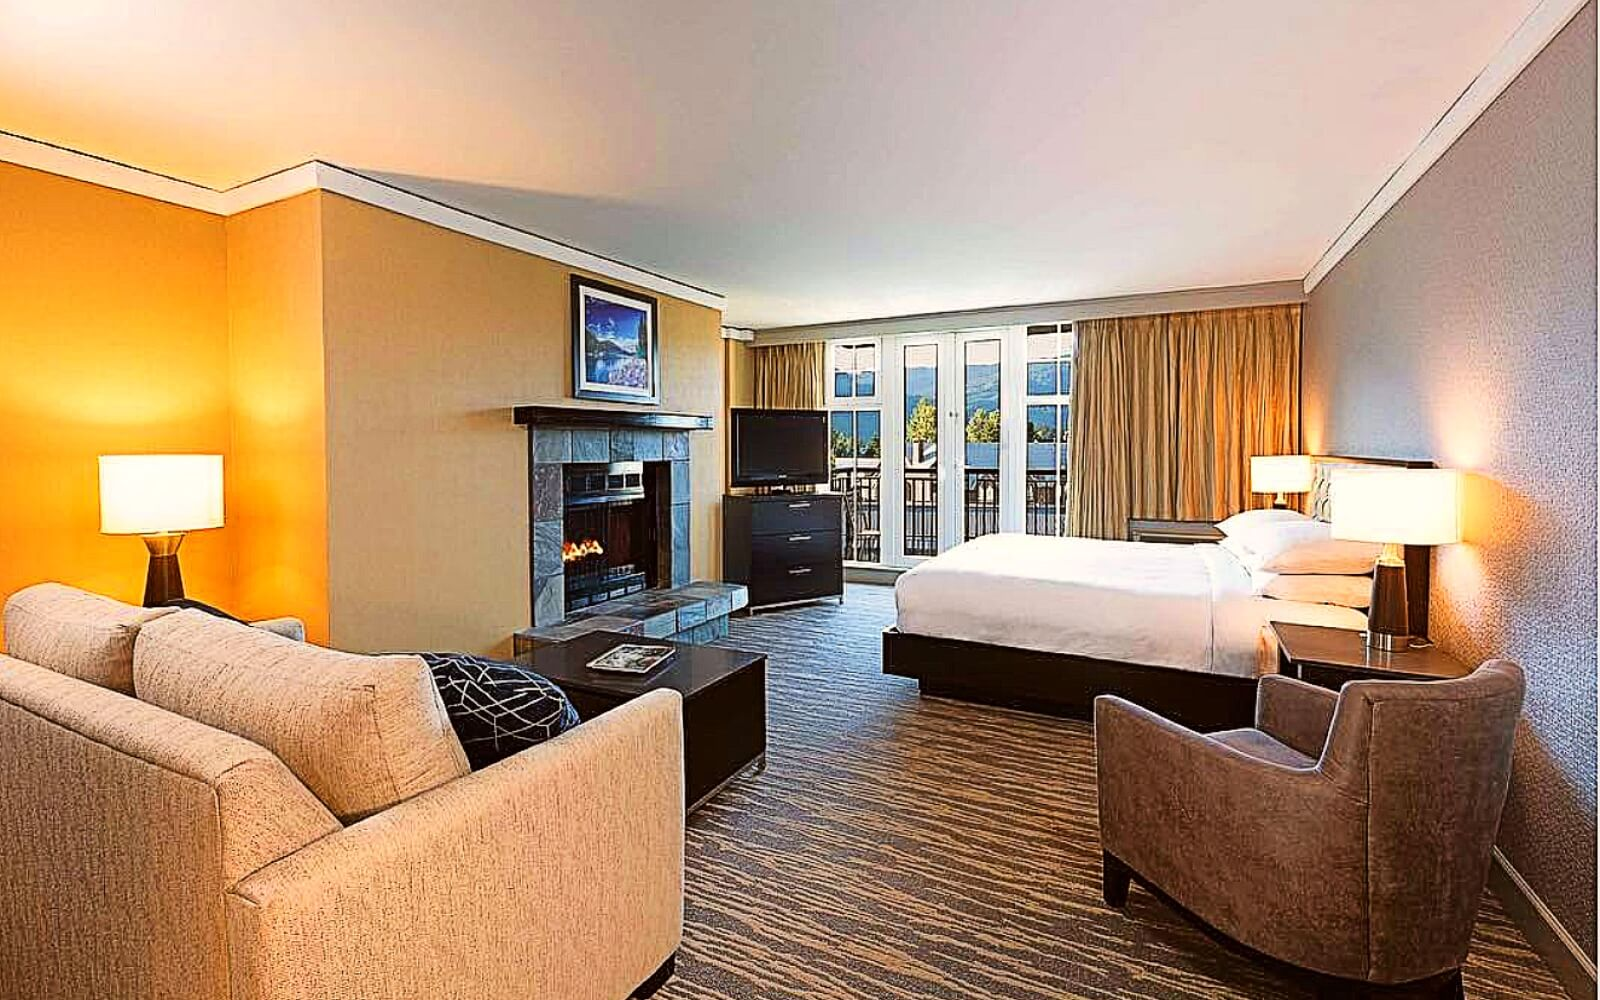 A room at the Hilton Resort and Spa, Whistler Village